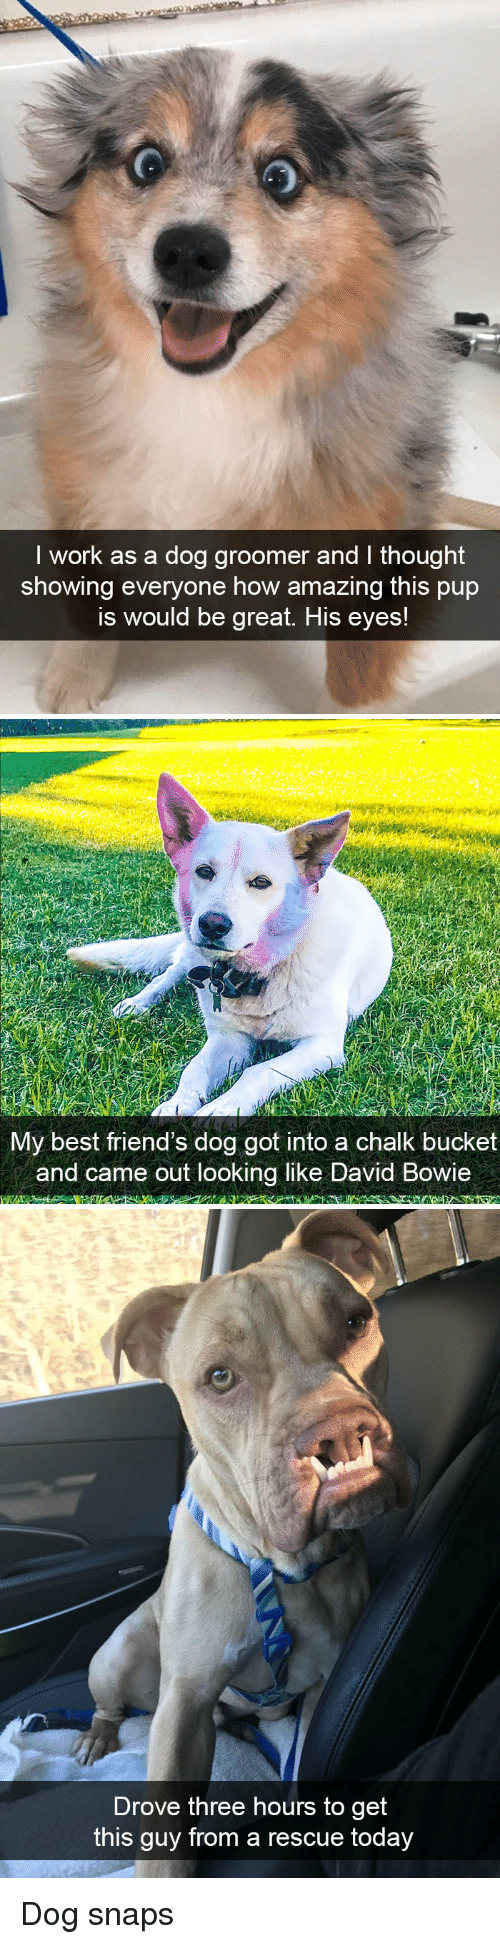 Friends, Work, and Best: I work as a dog groomer and I thought  showing everyone how amazing this pup  is would be great. His eyes!   My best friend's dog got into a chalk bucket  and came out looking like bavid Bowie   Drove three hours to get  this guy from a rescue today Dog snaps